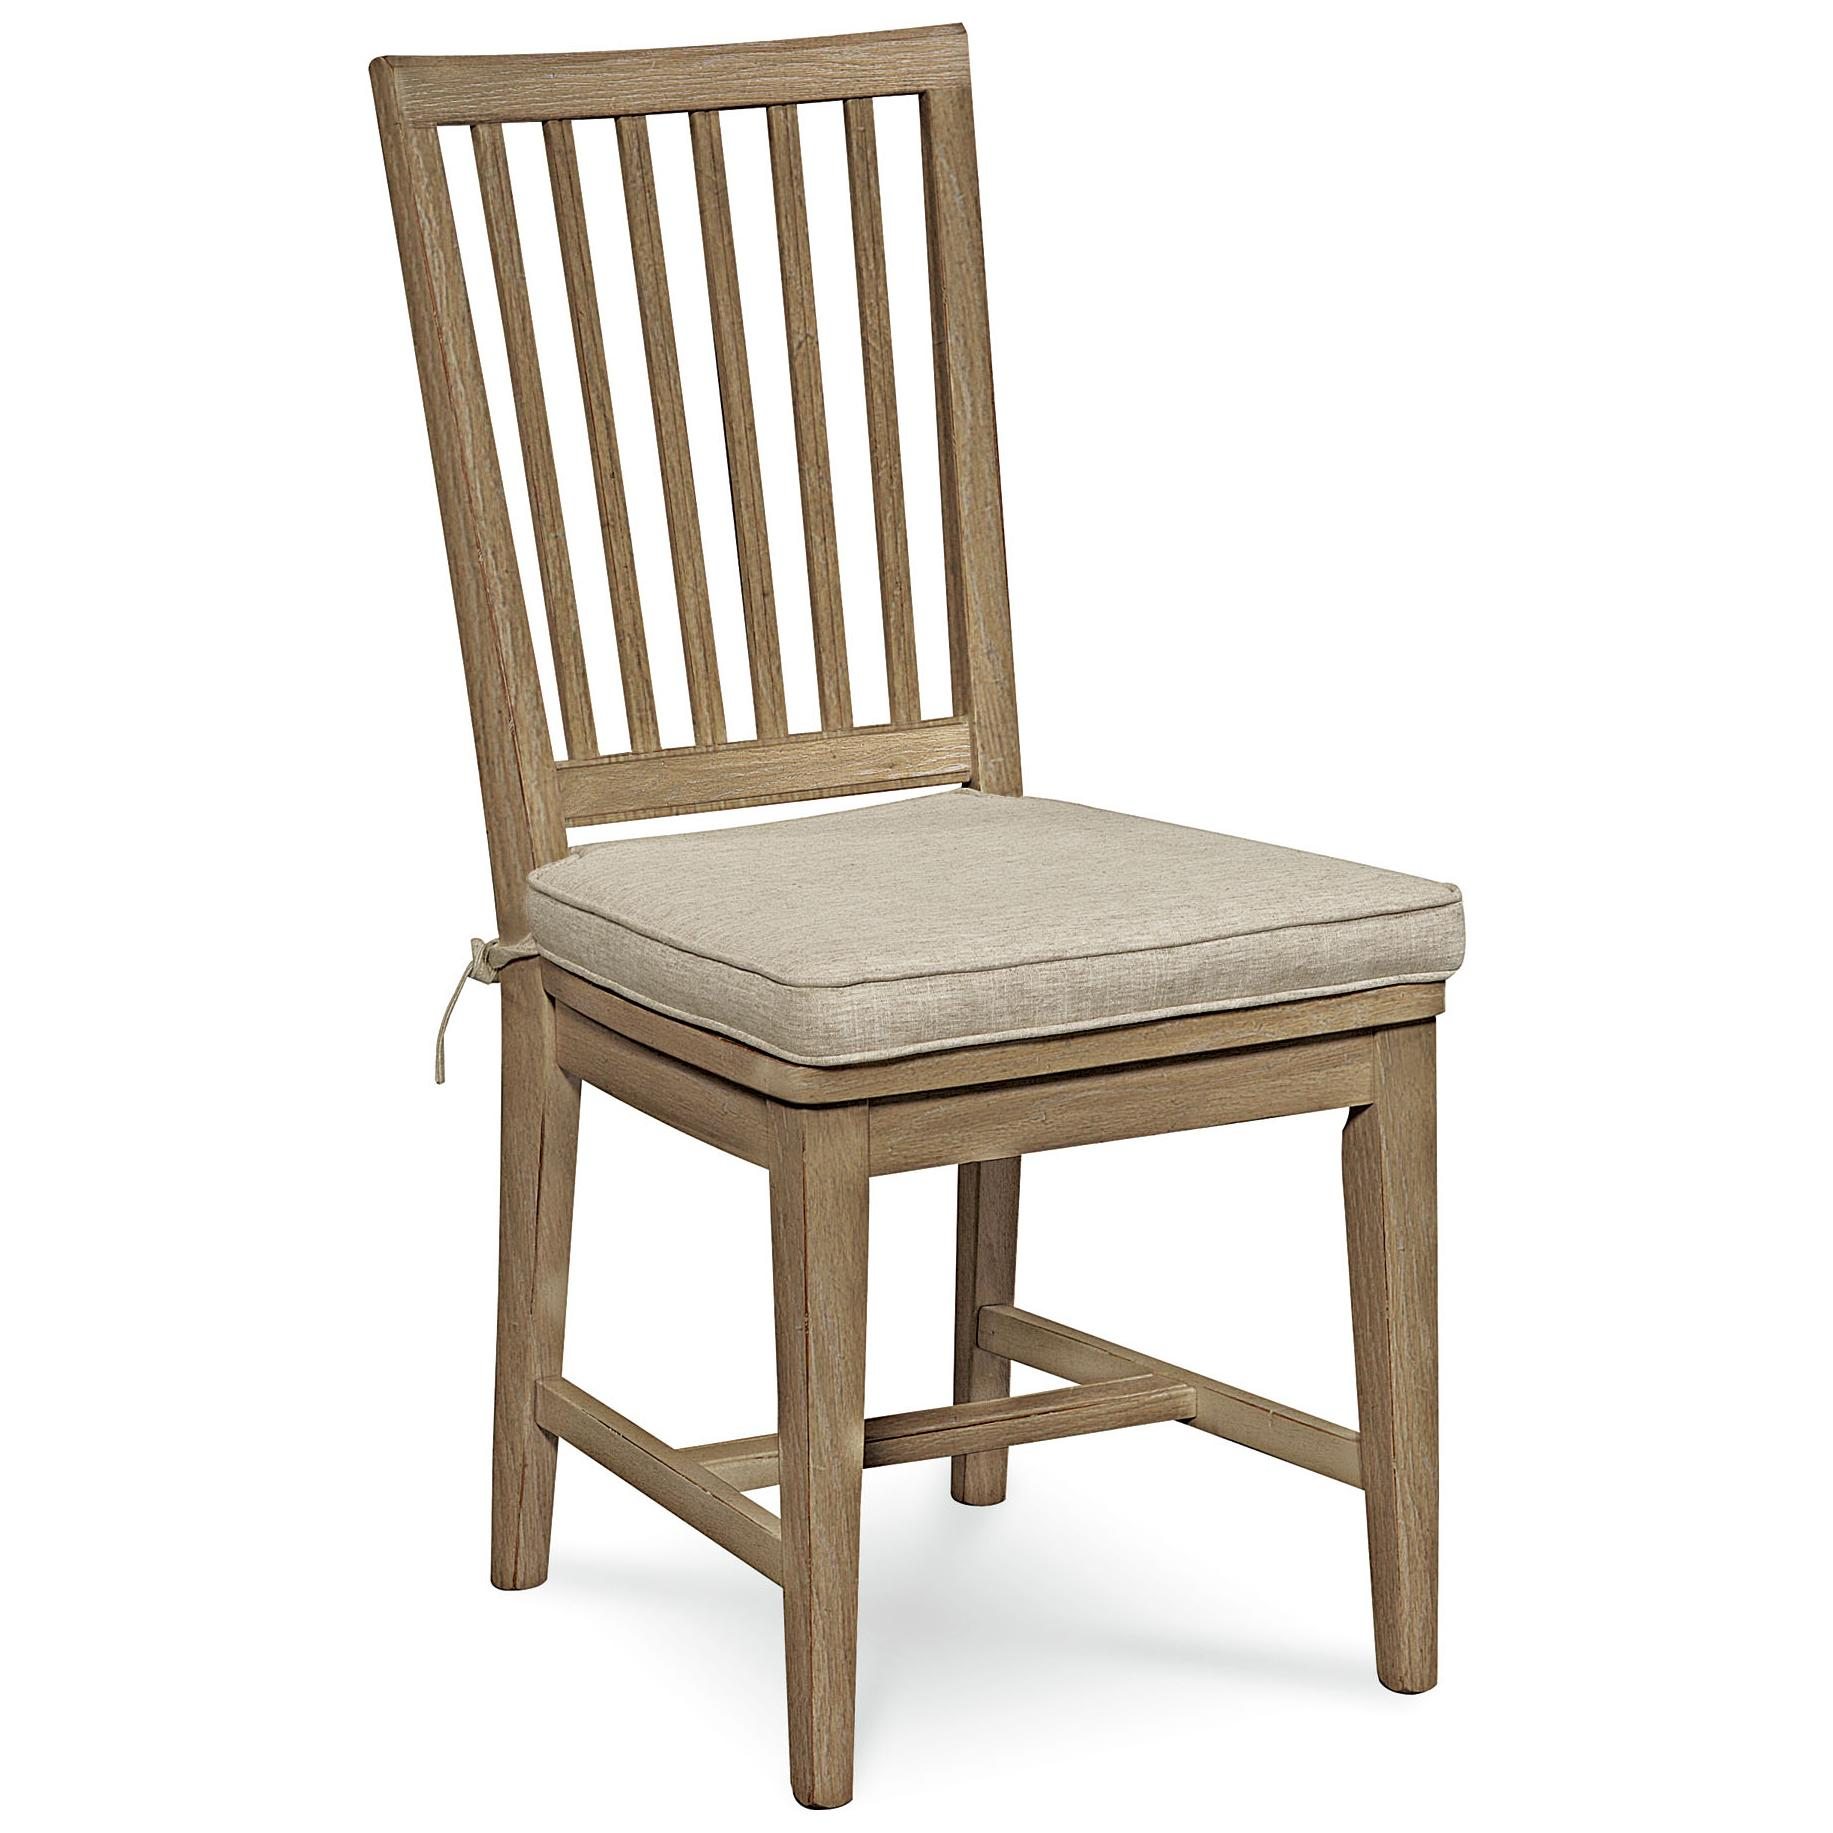 Jaycee Vertical Slat Side Chair